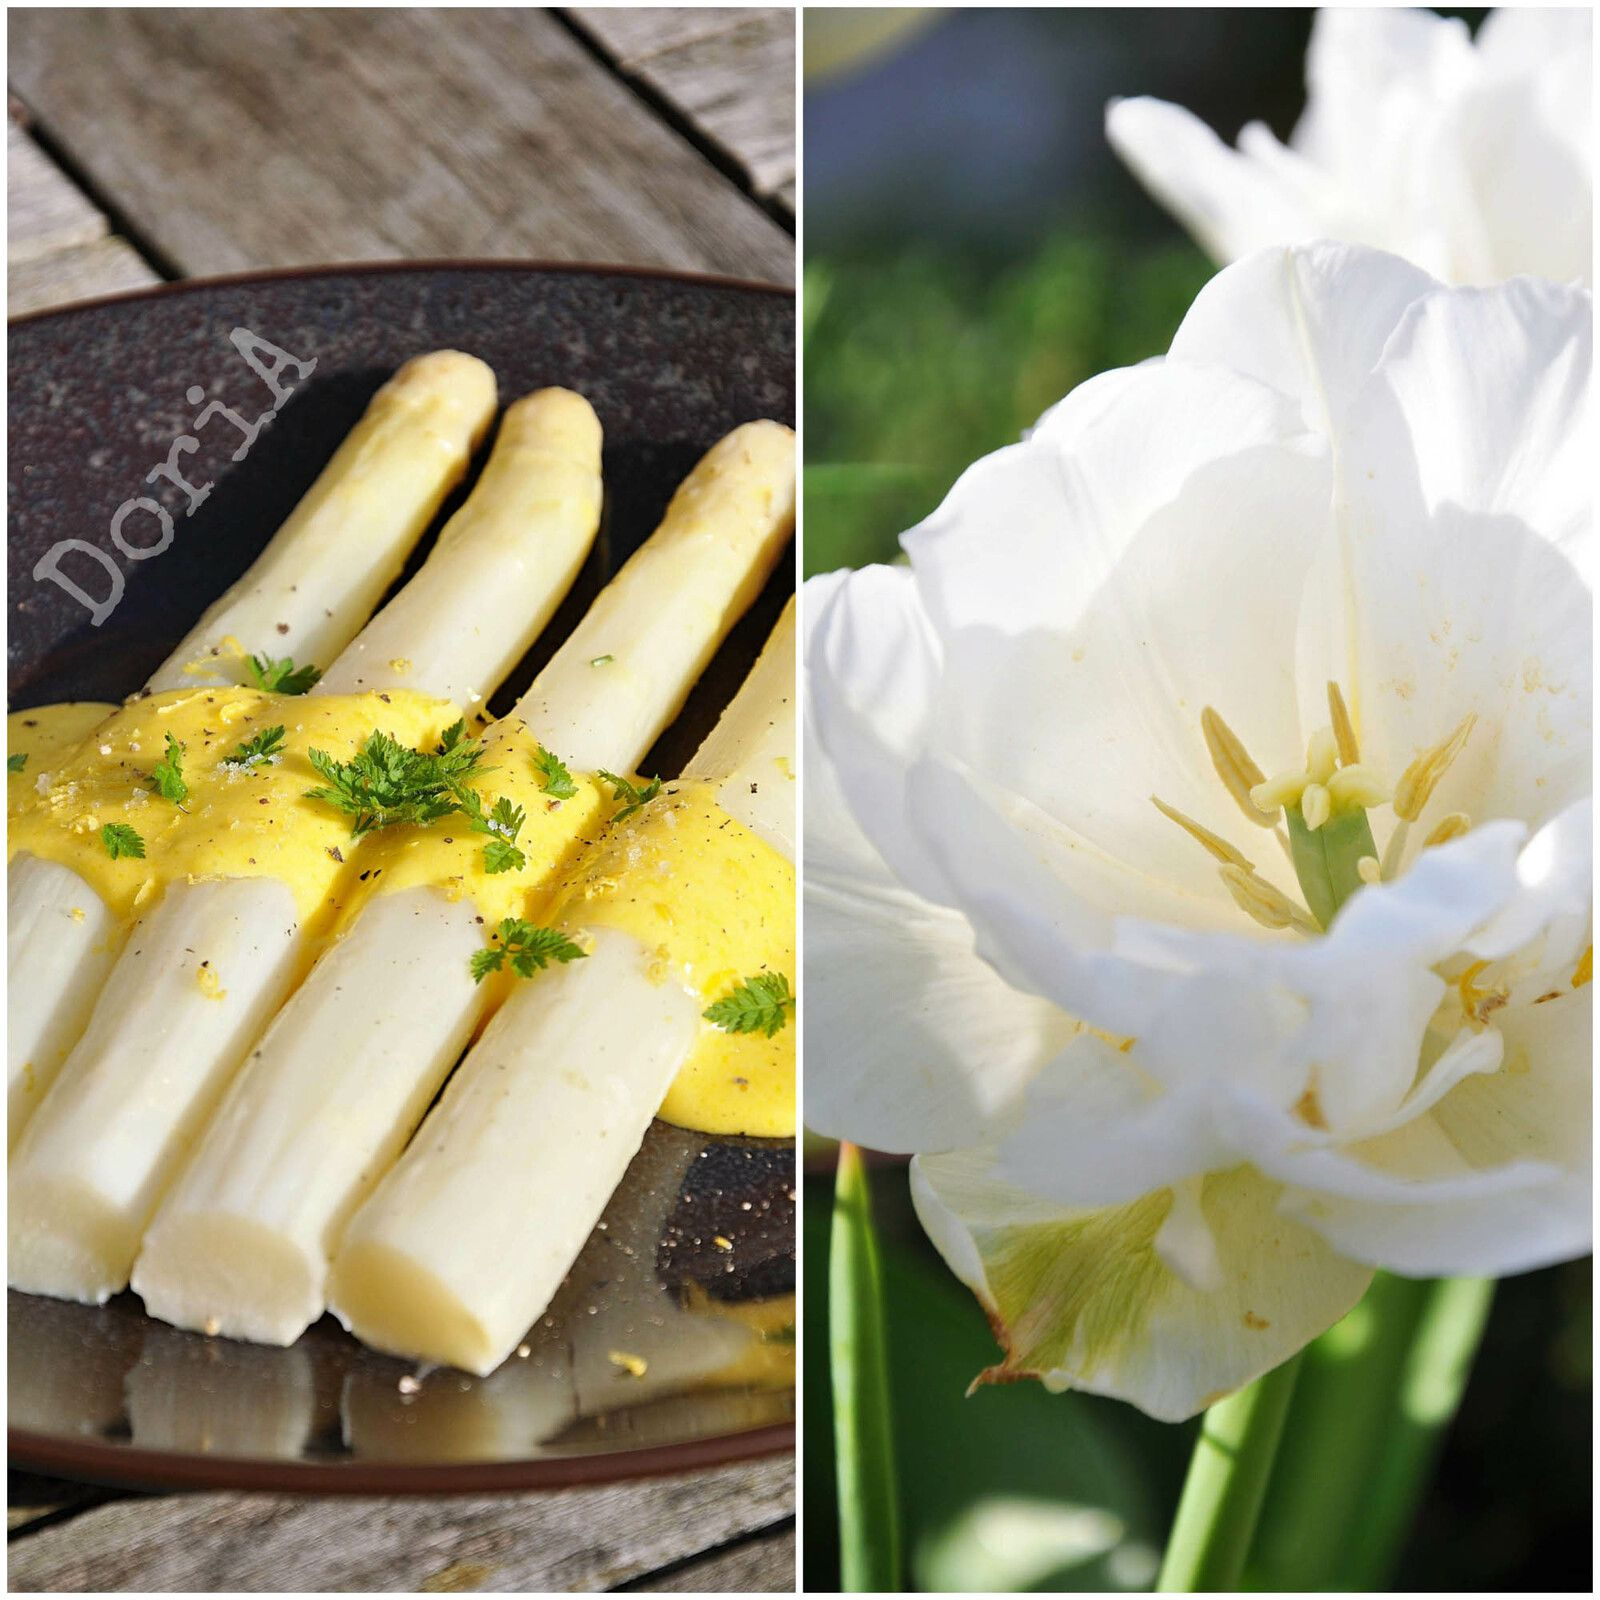 Asperges blanches, sauce hollandaise